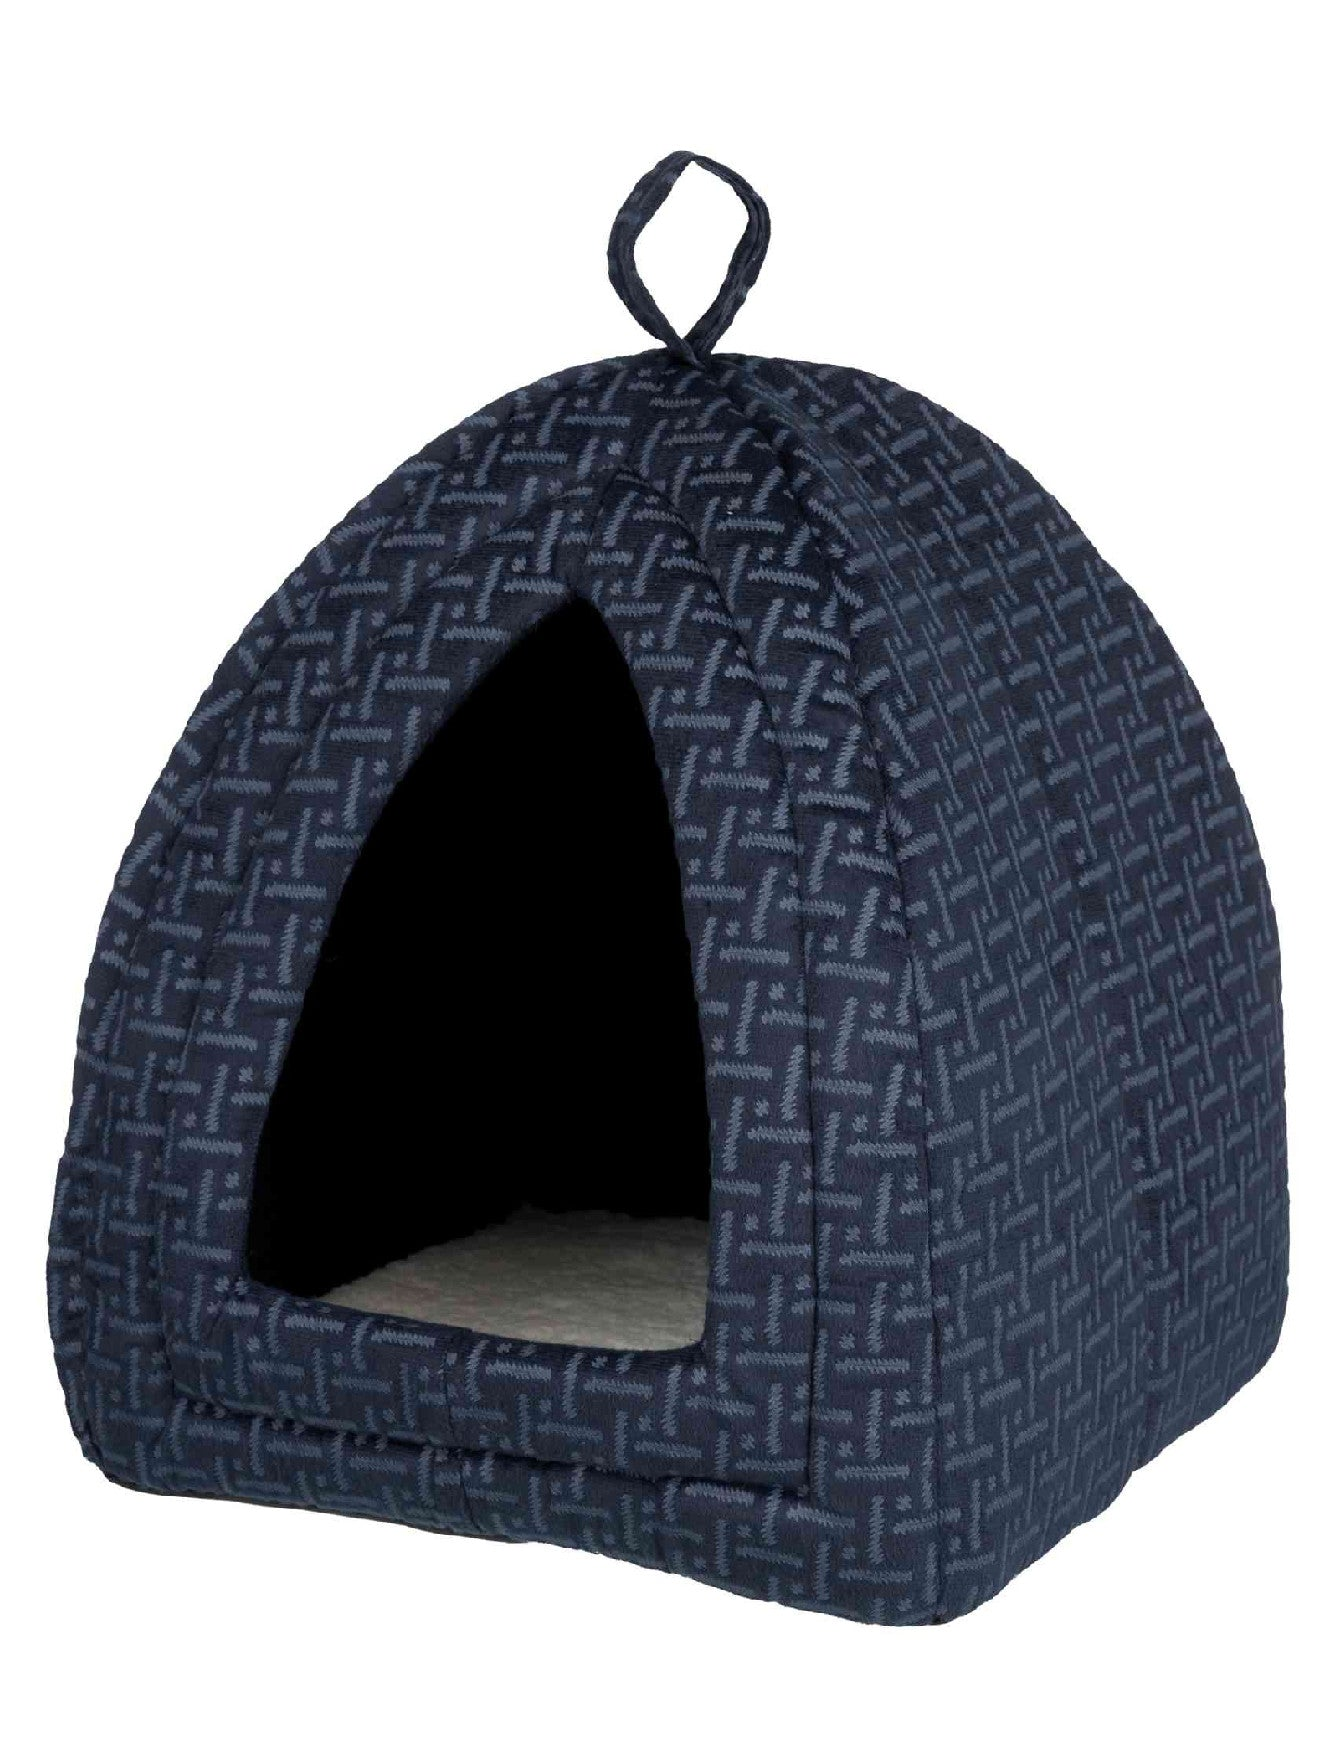 Trixie Ferris Cuddly Cave Blue For Dogs 32 × 42 × 32 cm | Perromart Online Pet Store Singapore